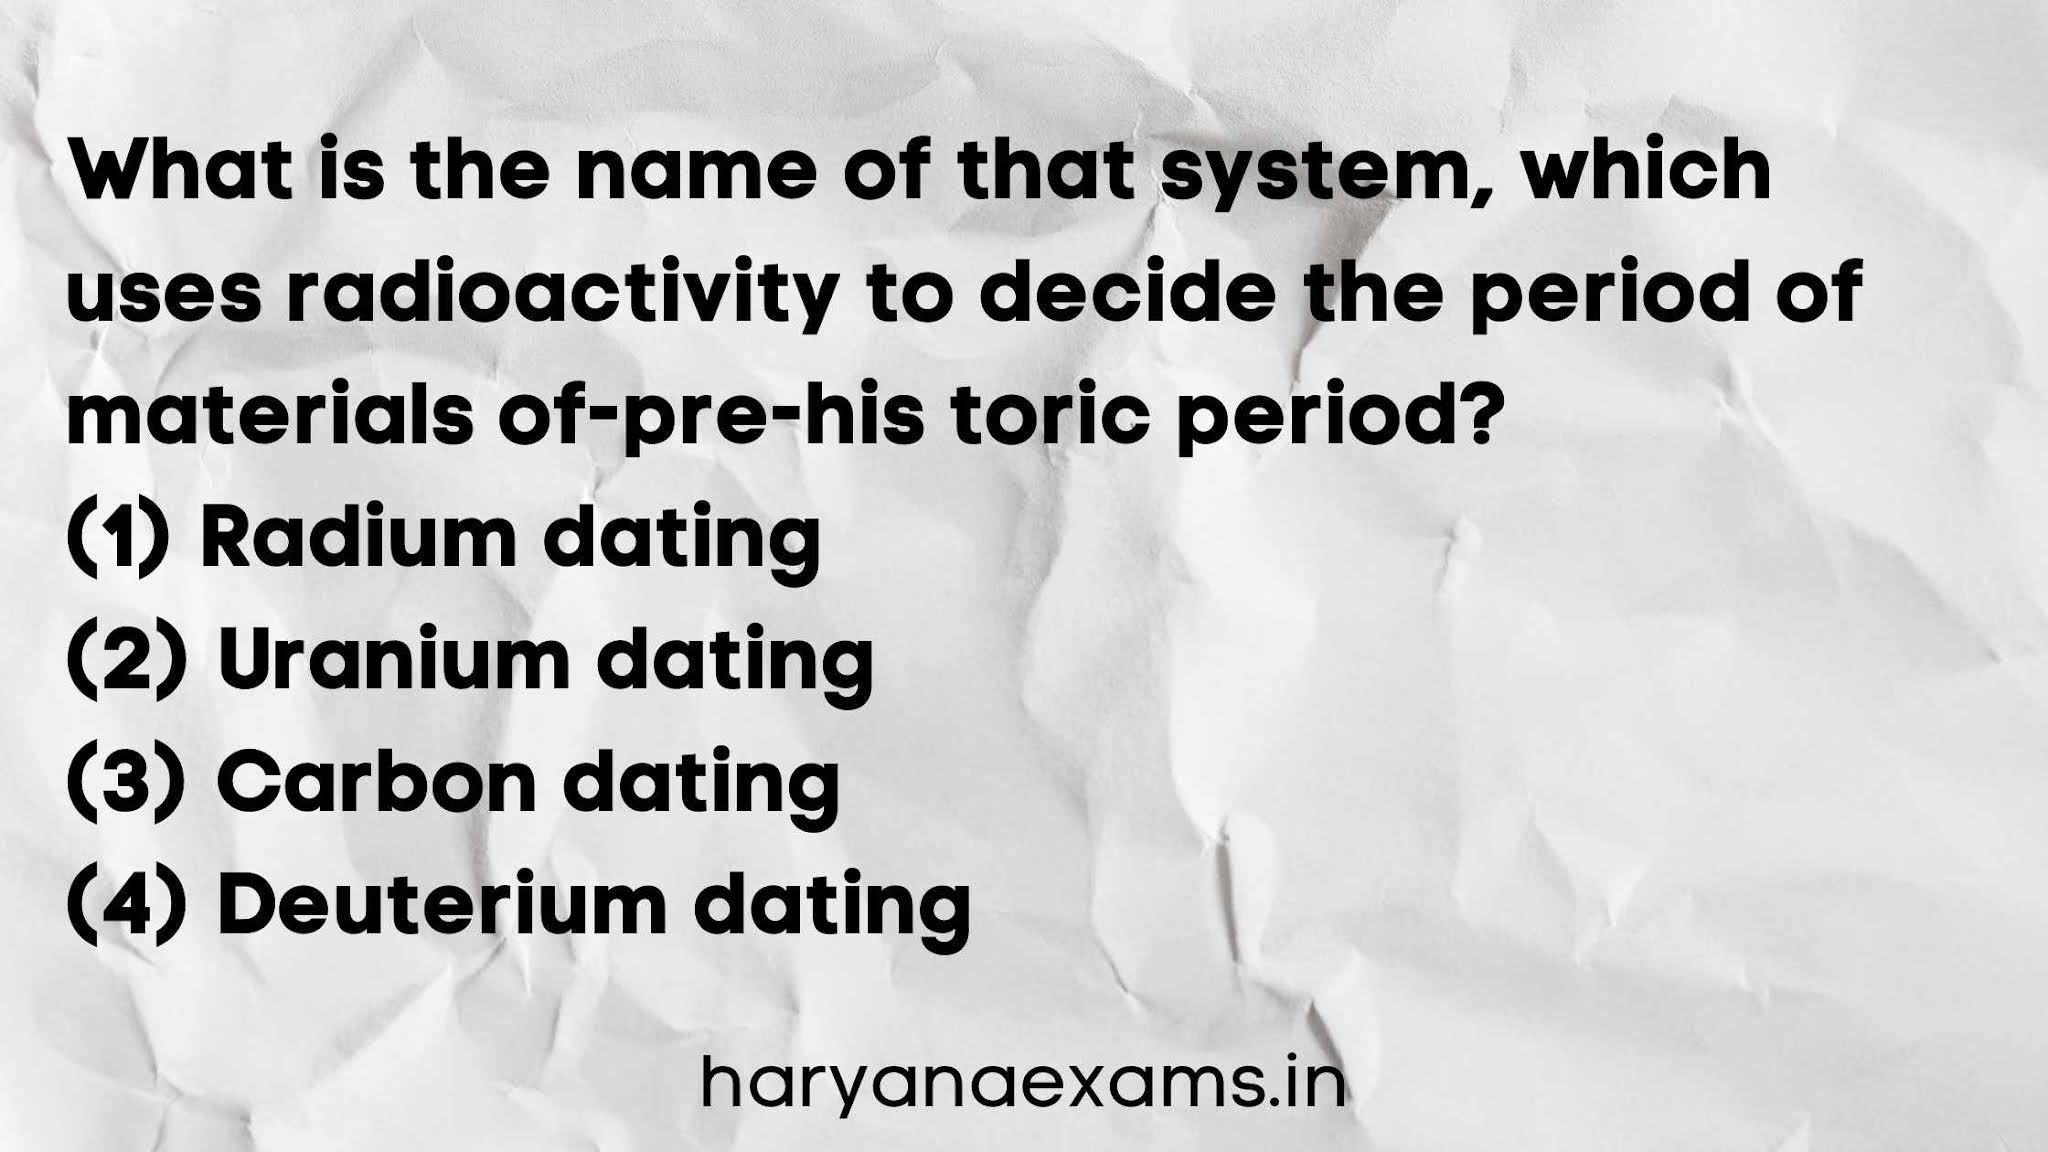 What is the name of that system, which uses radioactivity to decide the period of materials of pre-historic period?   (1) Radium dating   (2) Uranium dating   (3) Carbon dating   (4) Deuterium dating